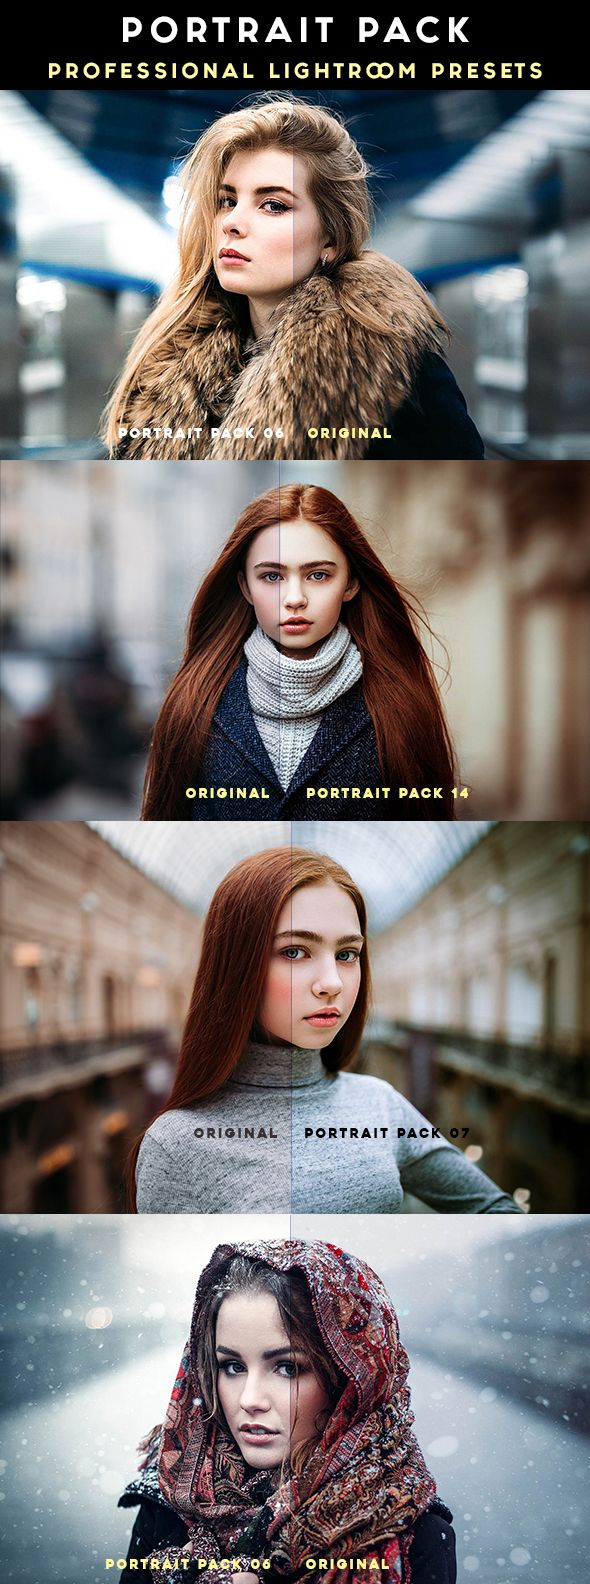 Portrait Pack 14 Professional Lightroom Presets is the pack of professional Lightroom Presets perfect for new and old photographers and graphic designers.